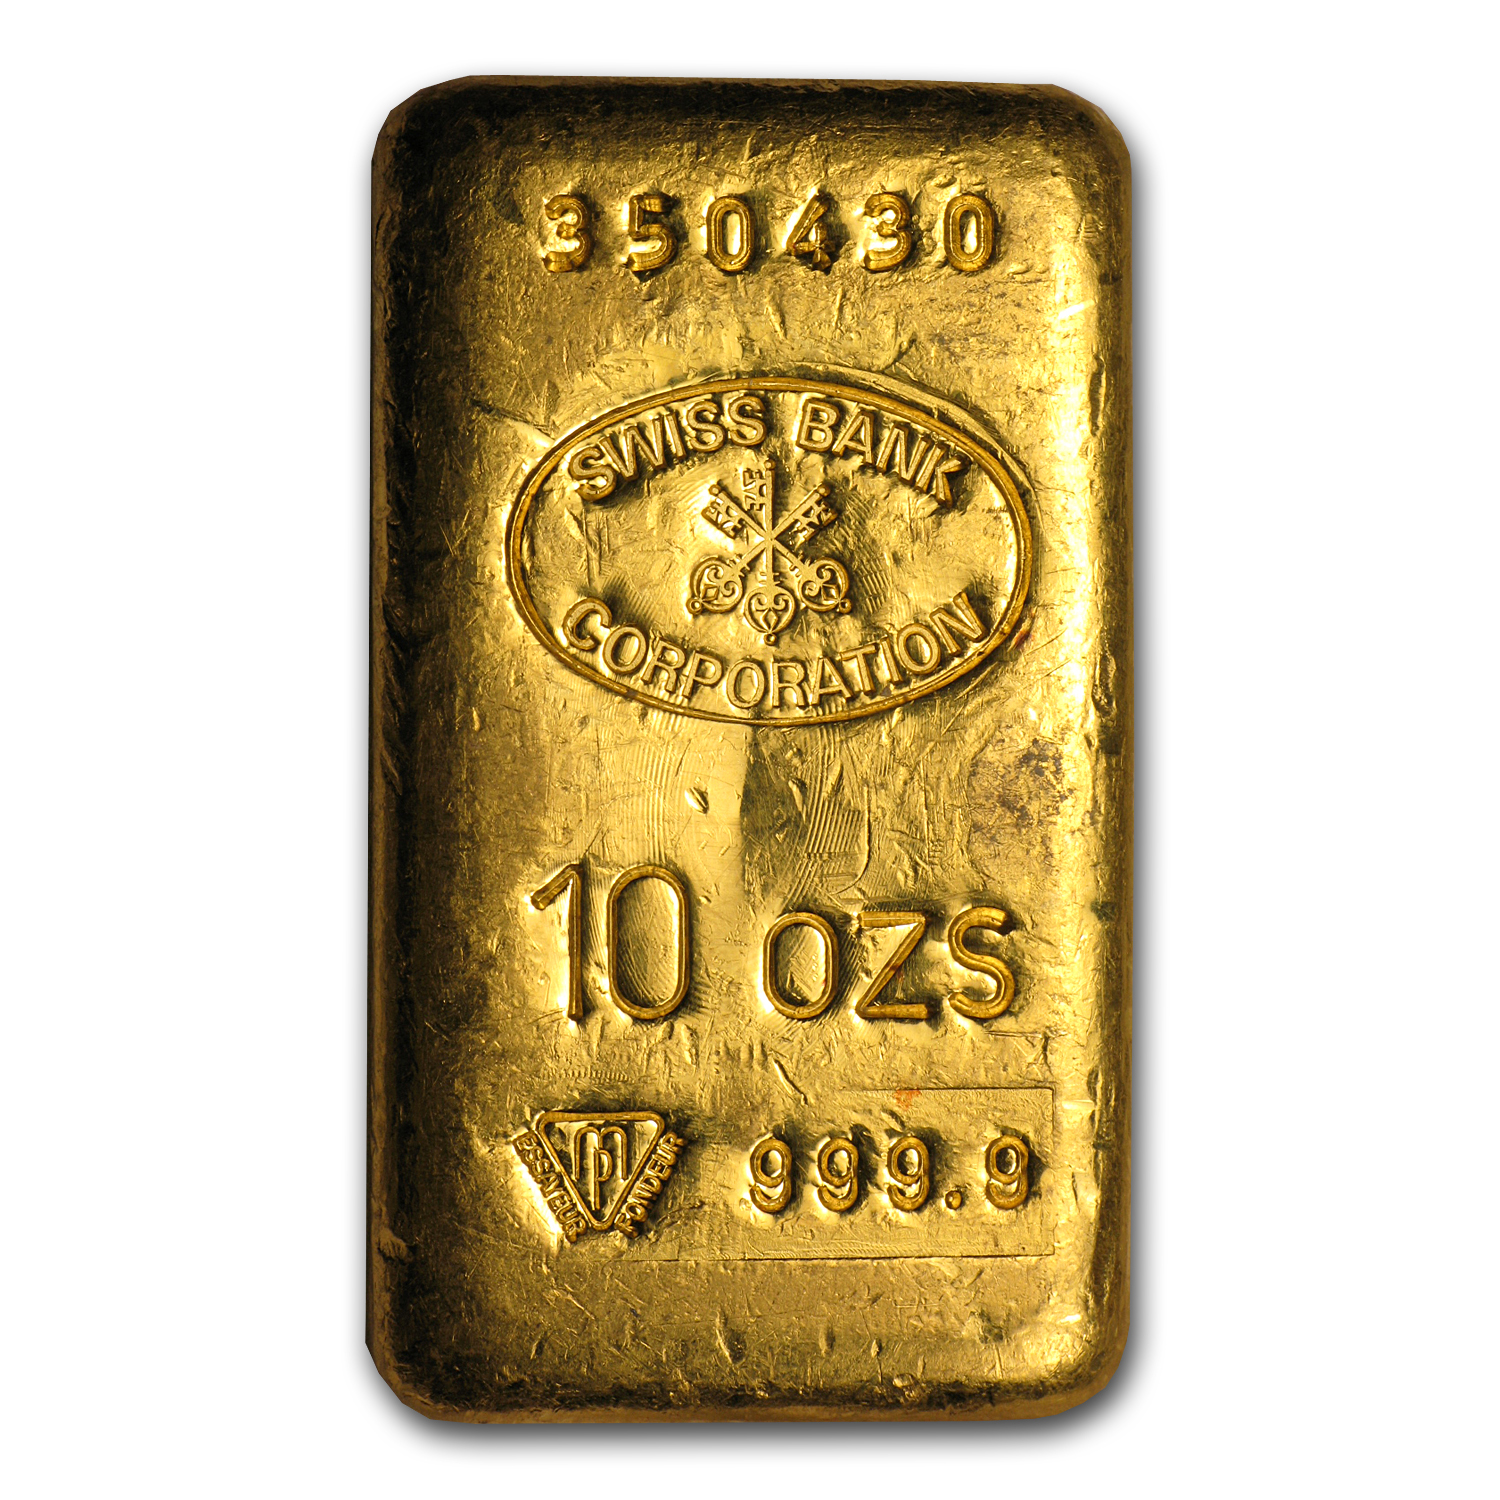 10 oz Gold Bar - Swiss Bank Corporation